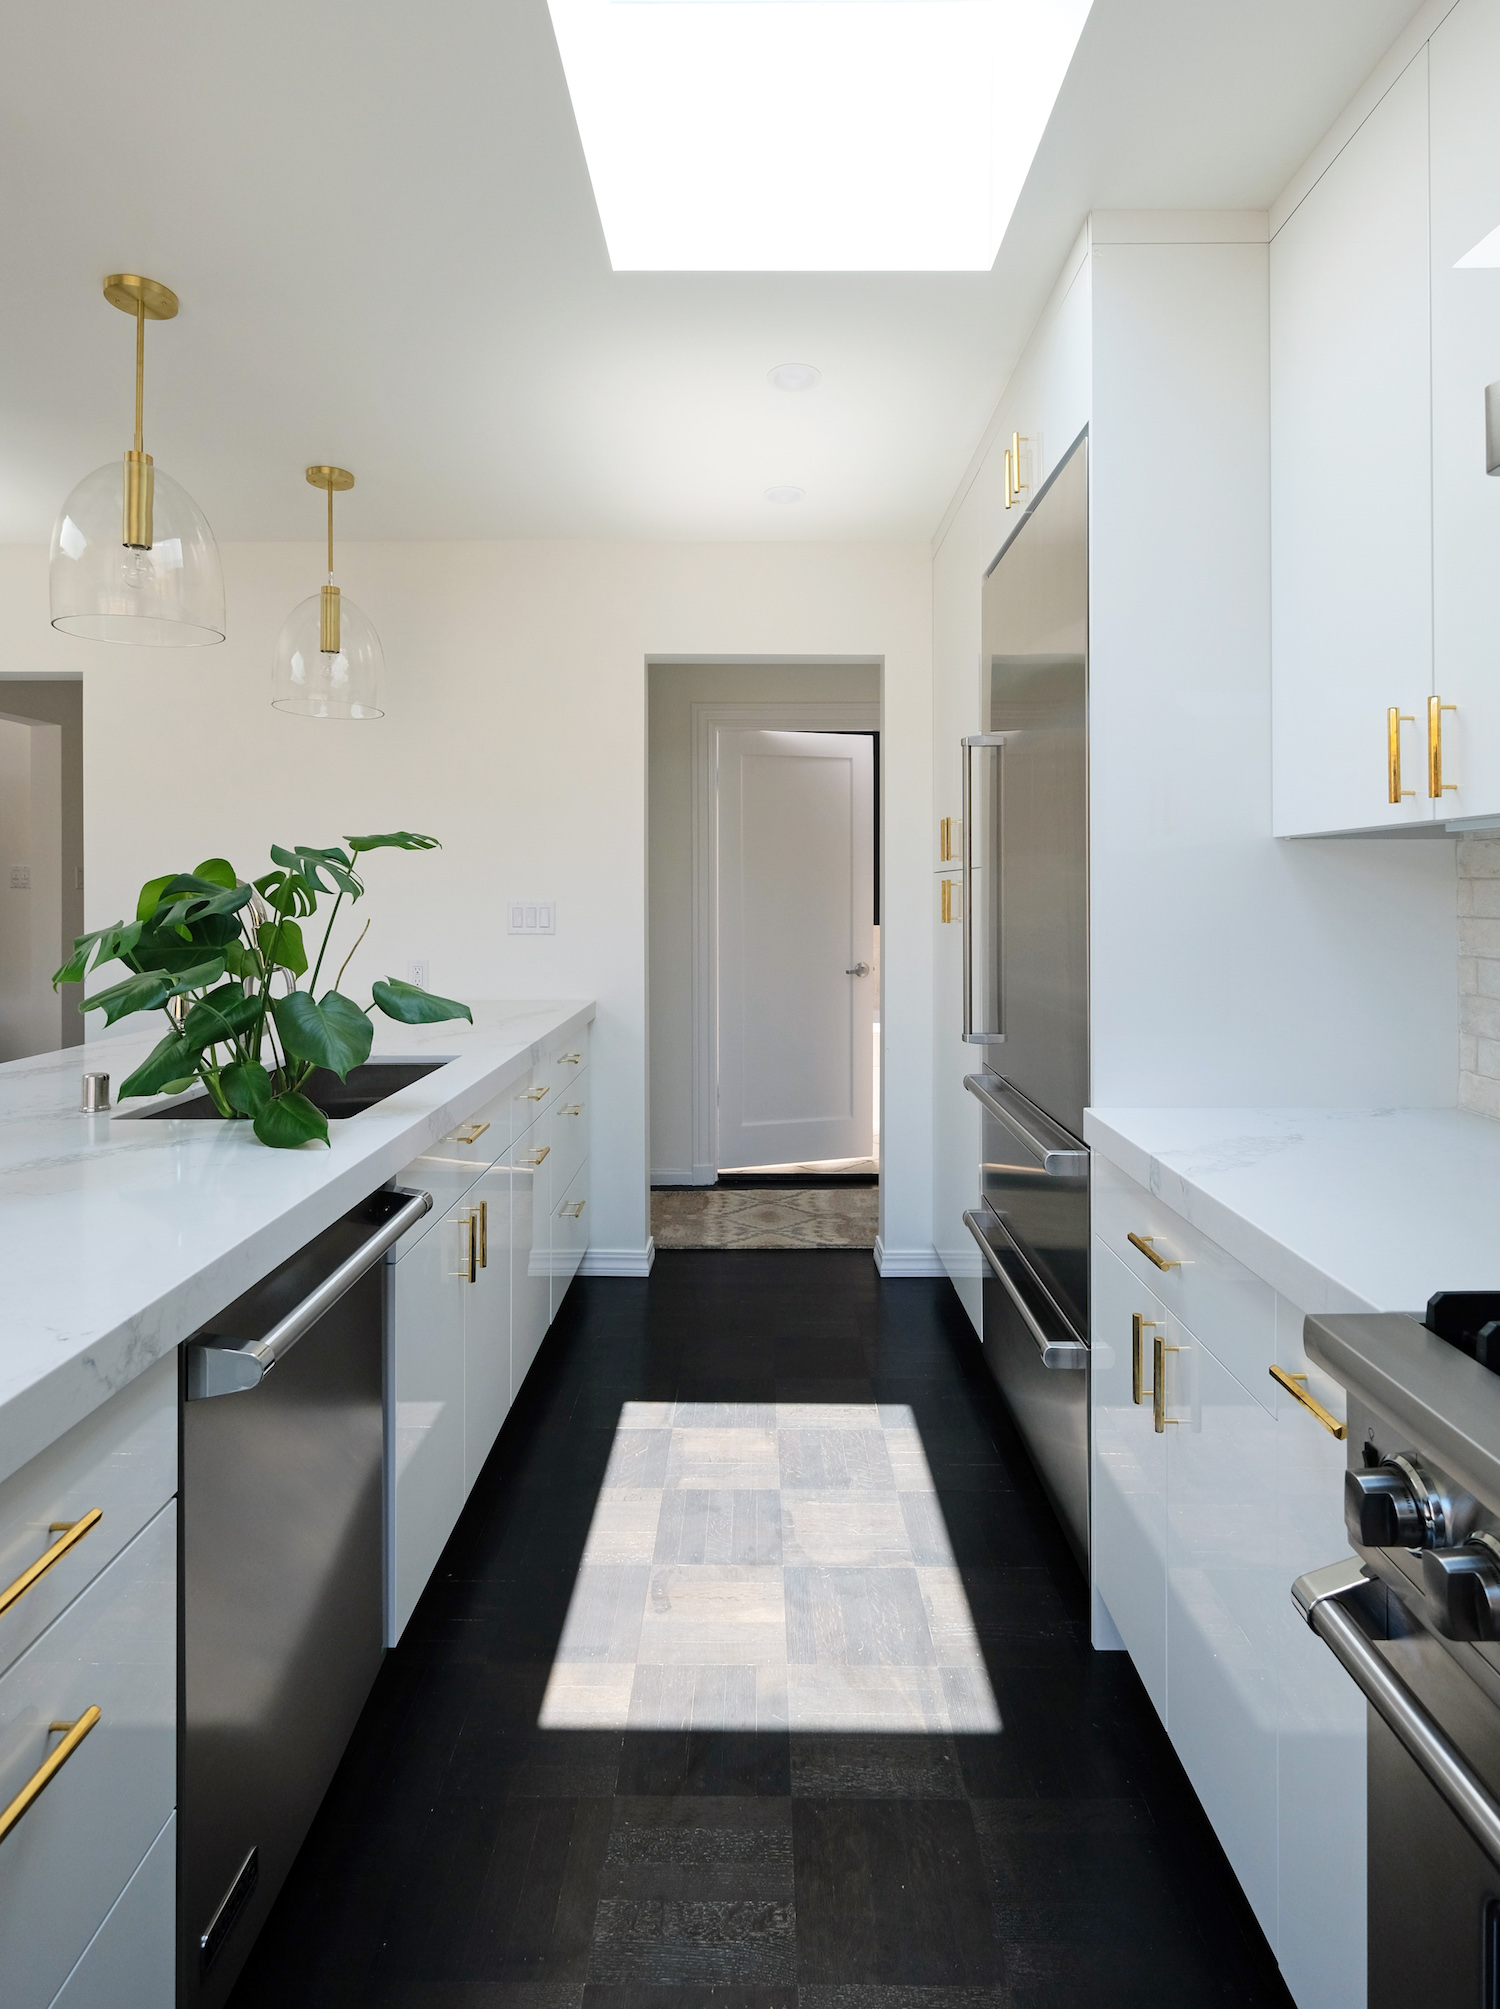 kitchen with white cabinets and gold hardware and gold pendant lighting and stainless steel appliances and wood flooring and white marble counters.jpg